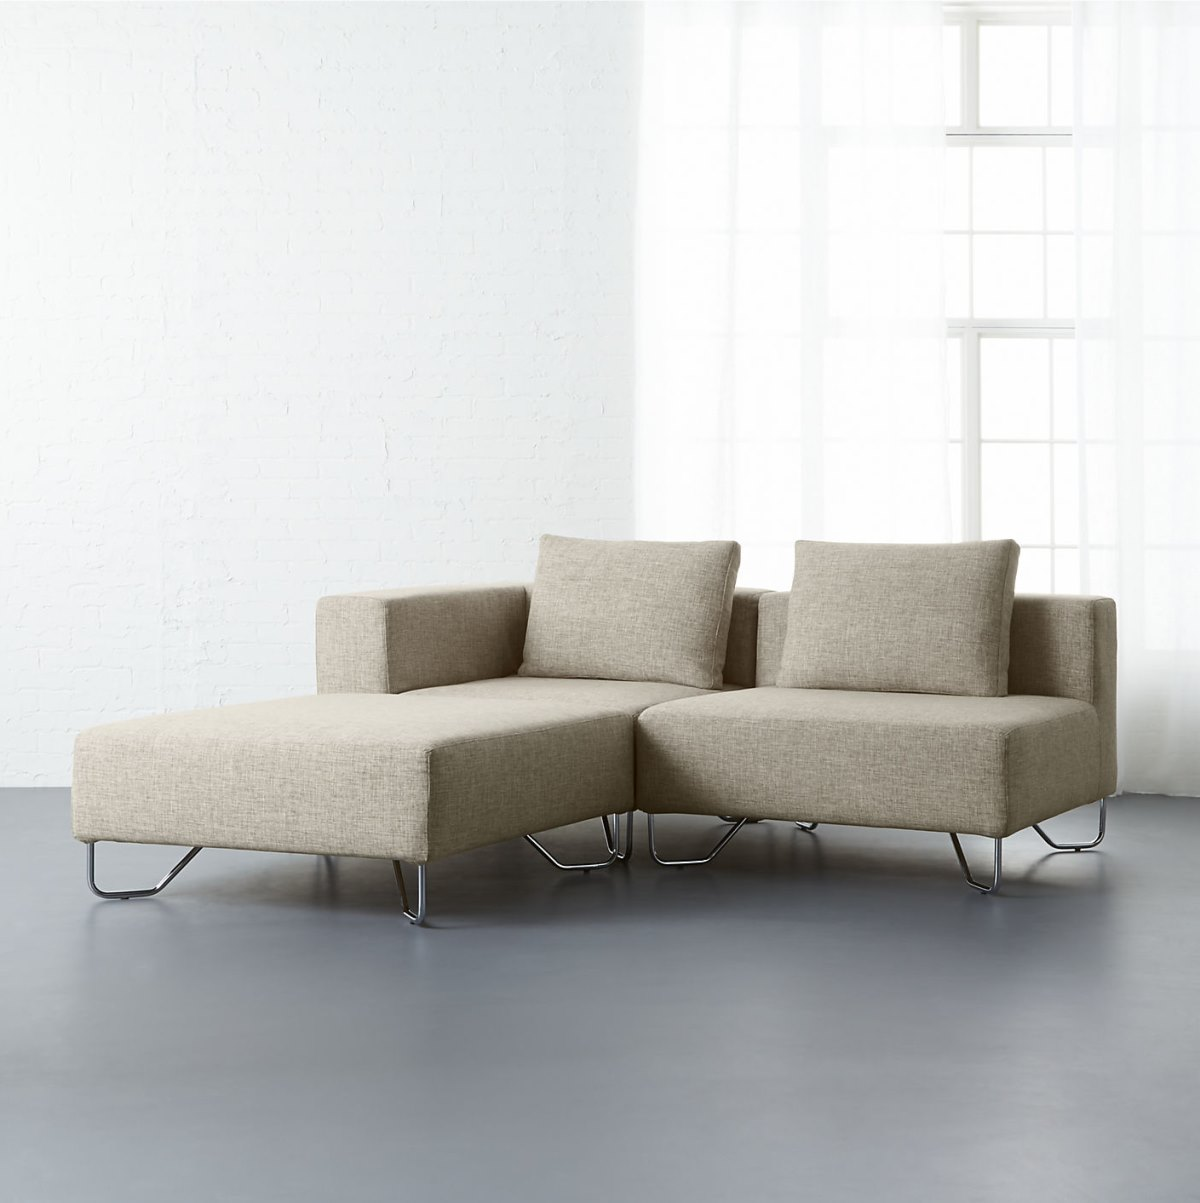 Beige modular seating from CB2